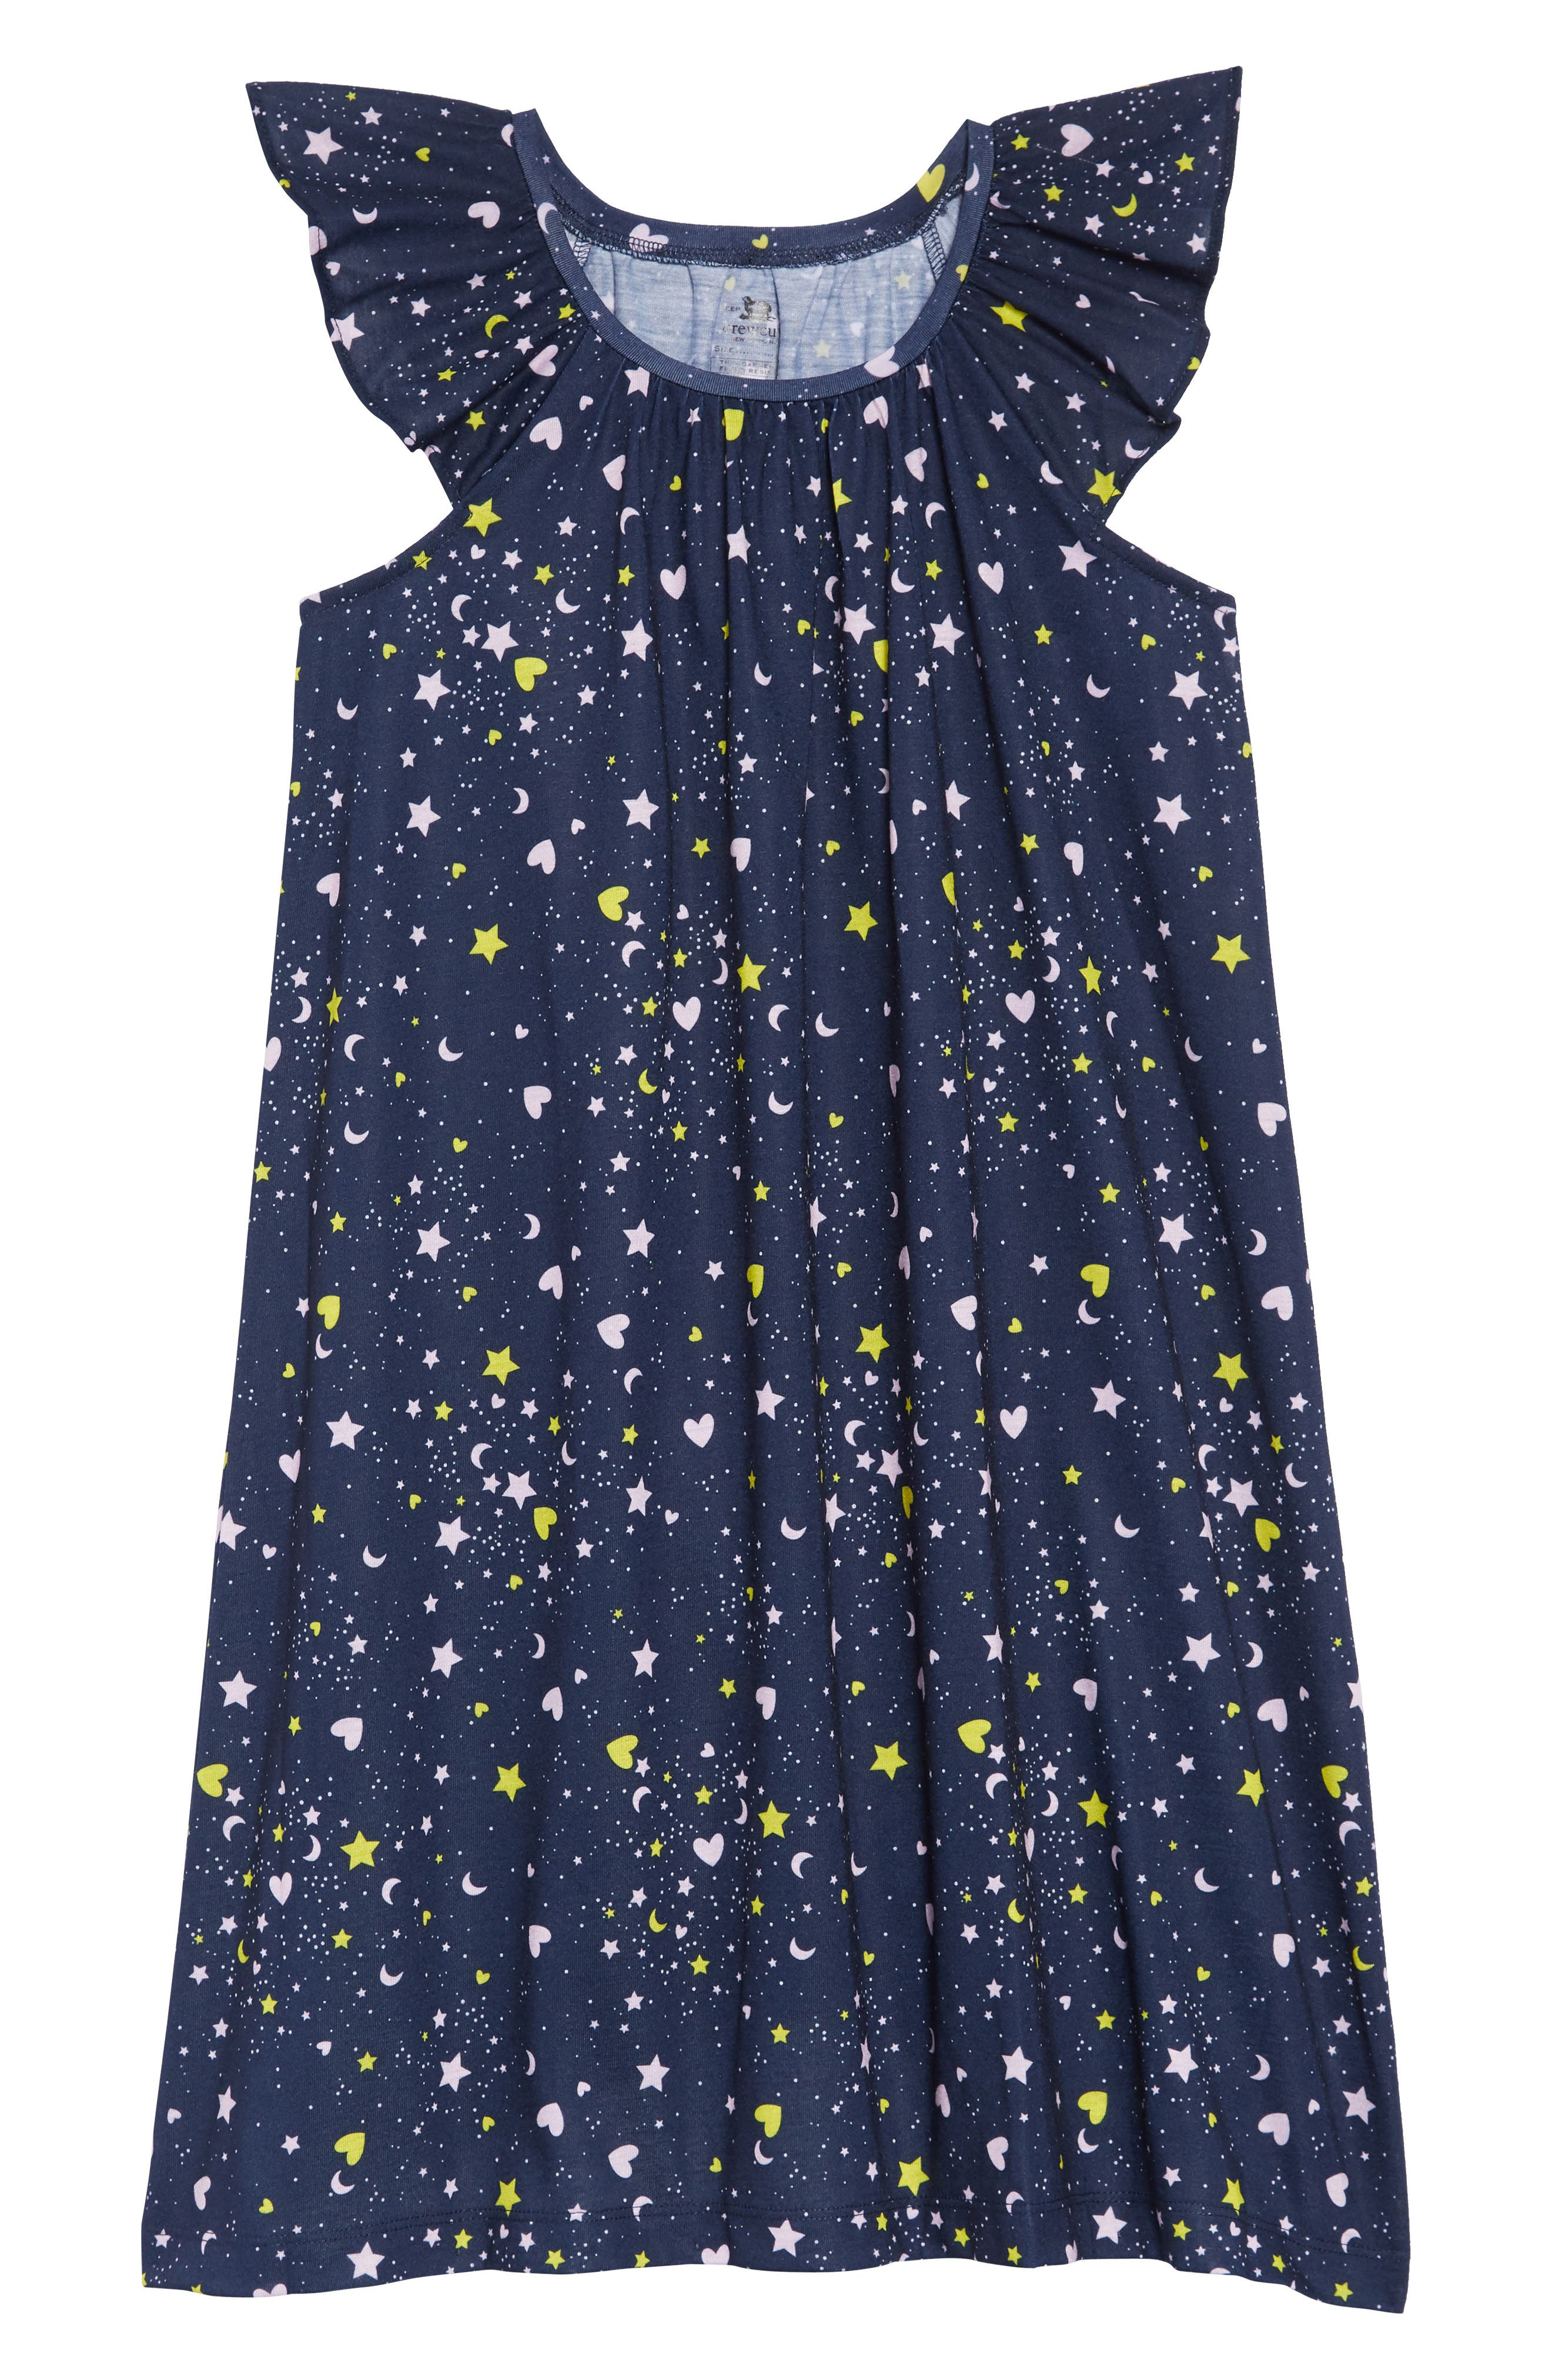 Toddler Girls Crewcuts By Jcrew Flutter Sleeve Nightgown Size 3T  Blue